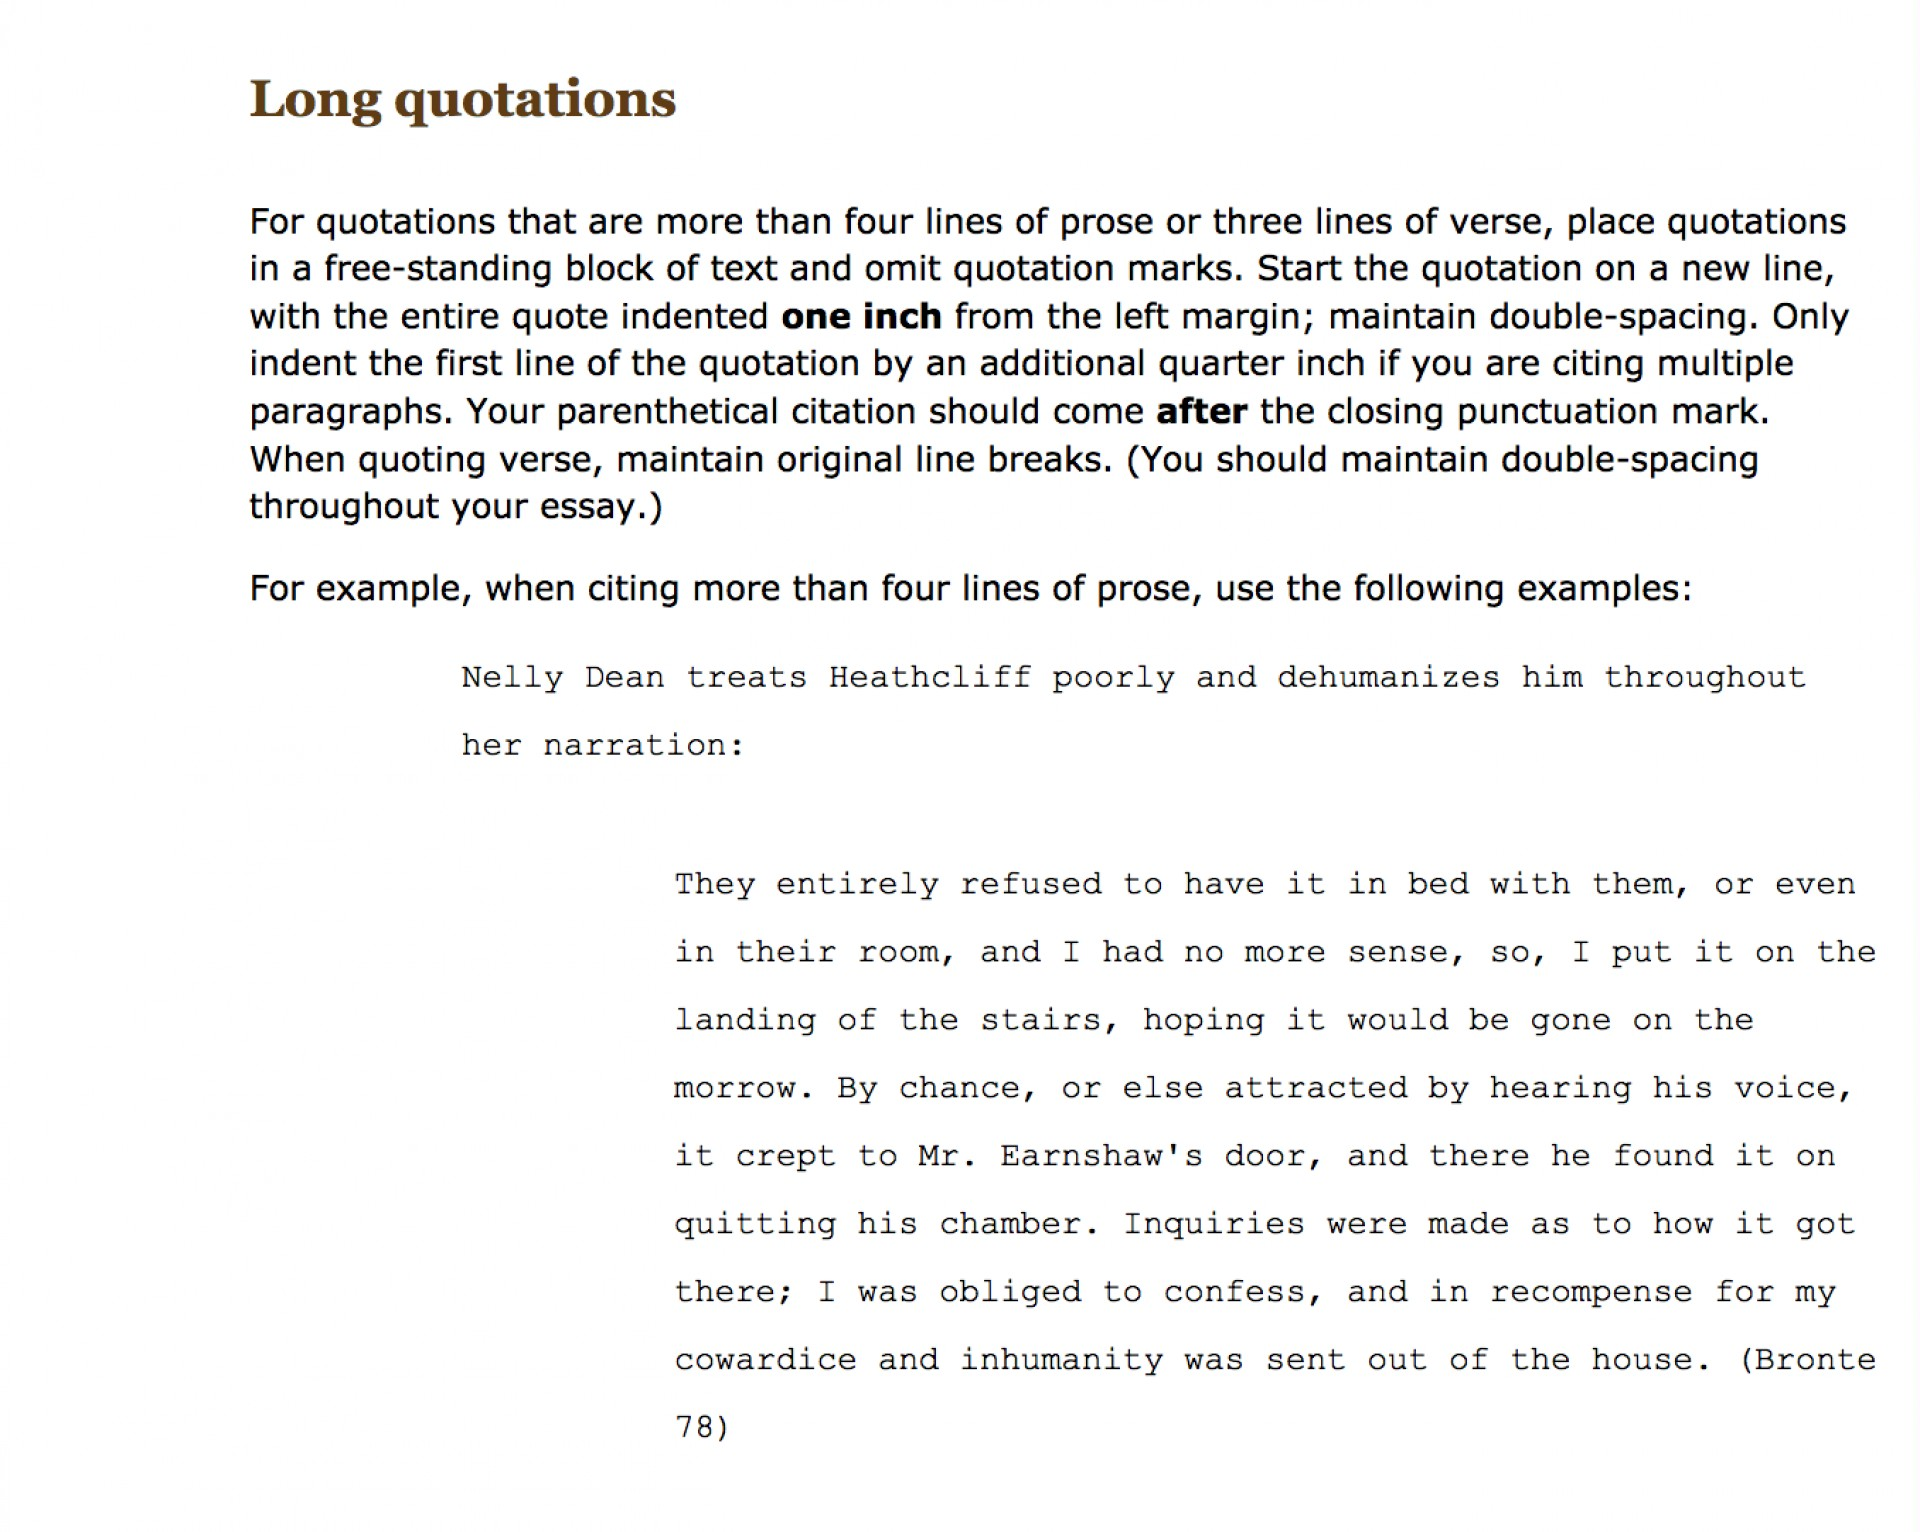 019 How To Incorporate Quotes Into An Essay Screen Shot At Pm Wondrous Integrating Worksheet A Long Quote Mla Famous In 1920